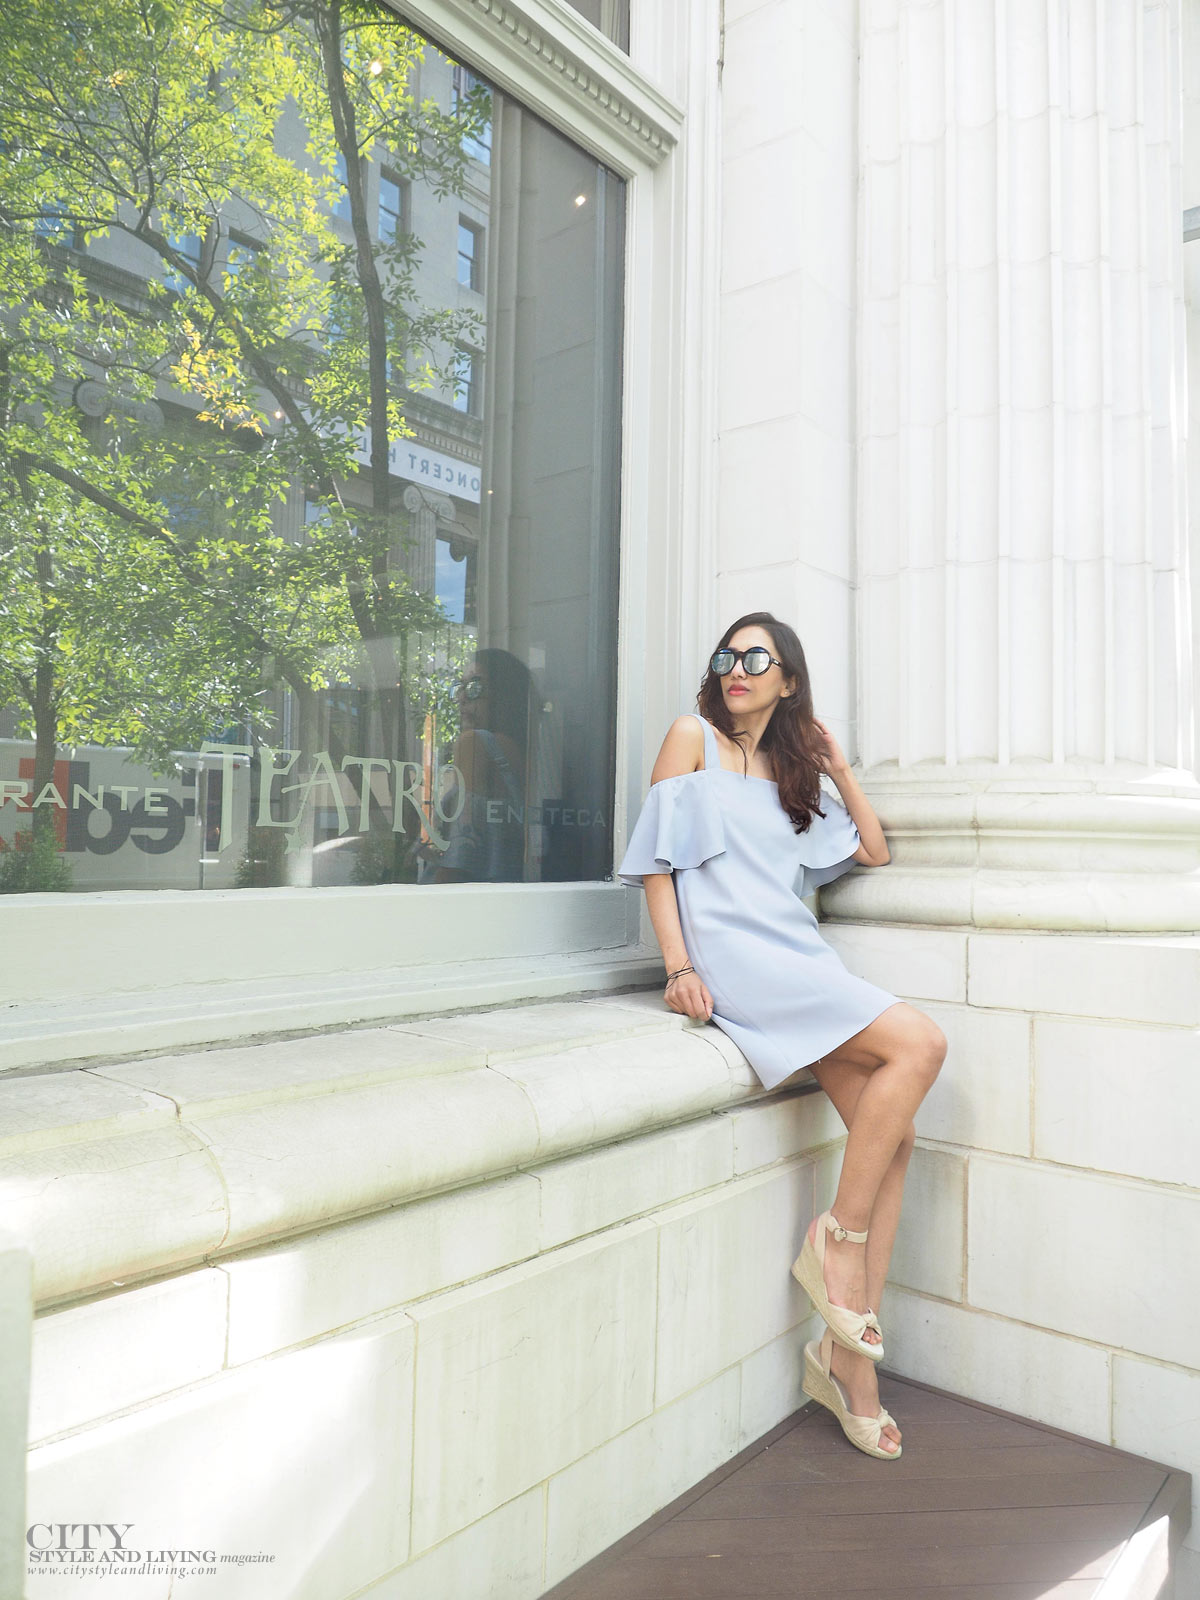 City STyle and Living The Editors Notebook style blogger Downtown Calgary colourful flowers blooming during summer wearing an off shoulder topshop dress and wedges at teatro